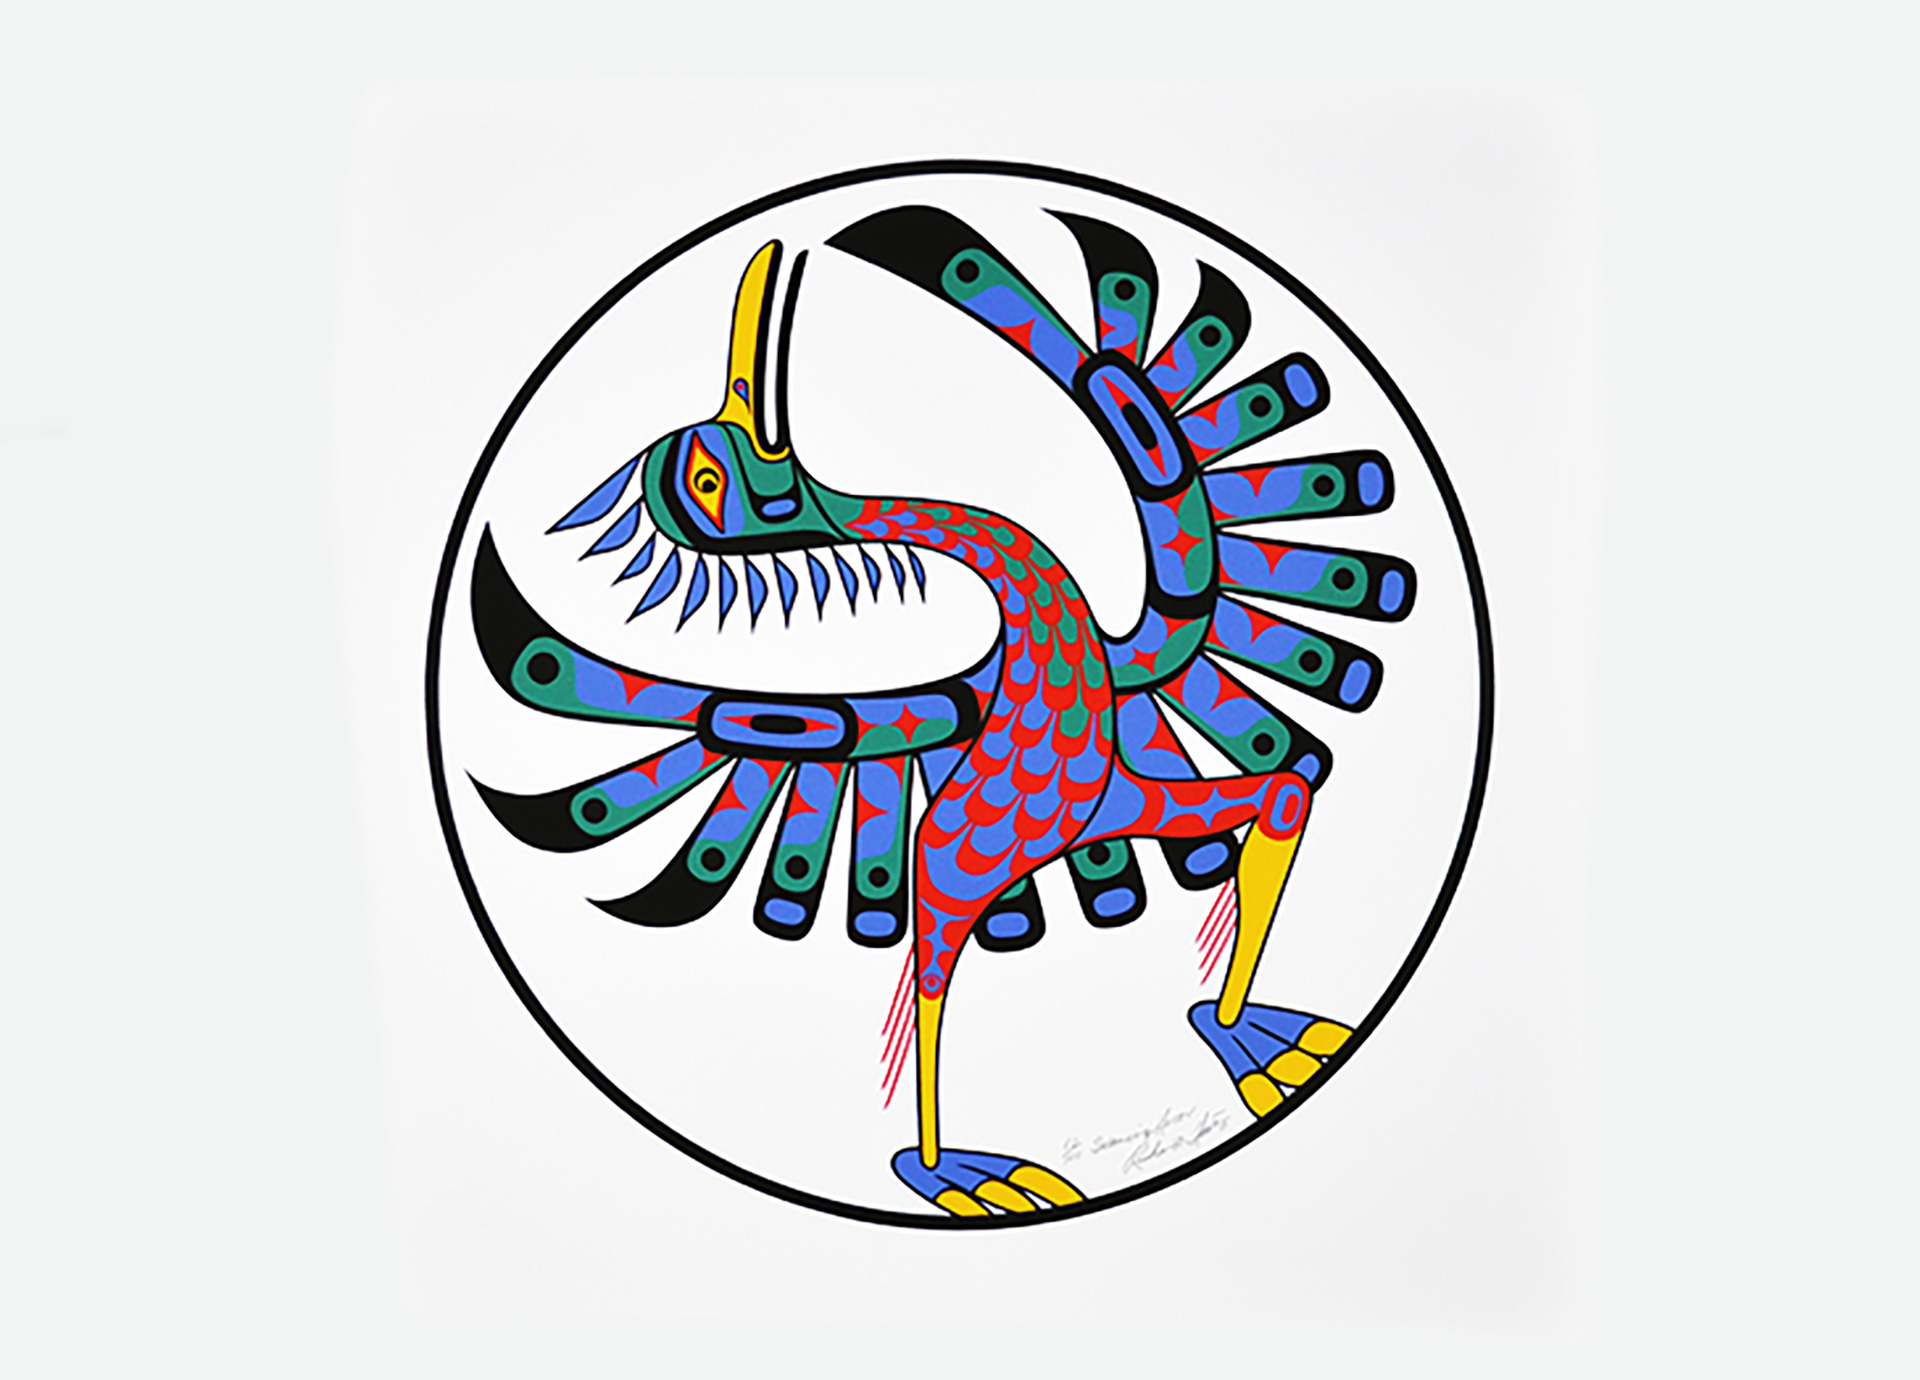 This cheerful dancing heron print was featured as the logo for the 26th annual Times Colonist 10K race.